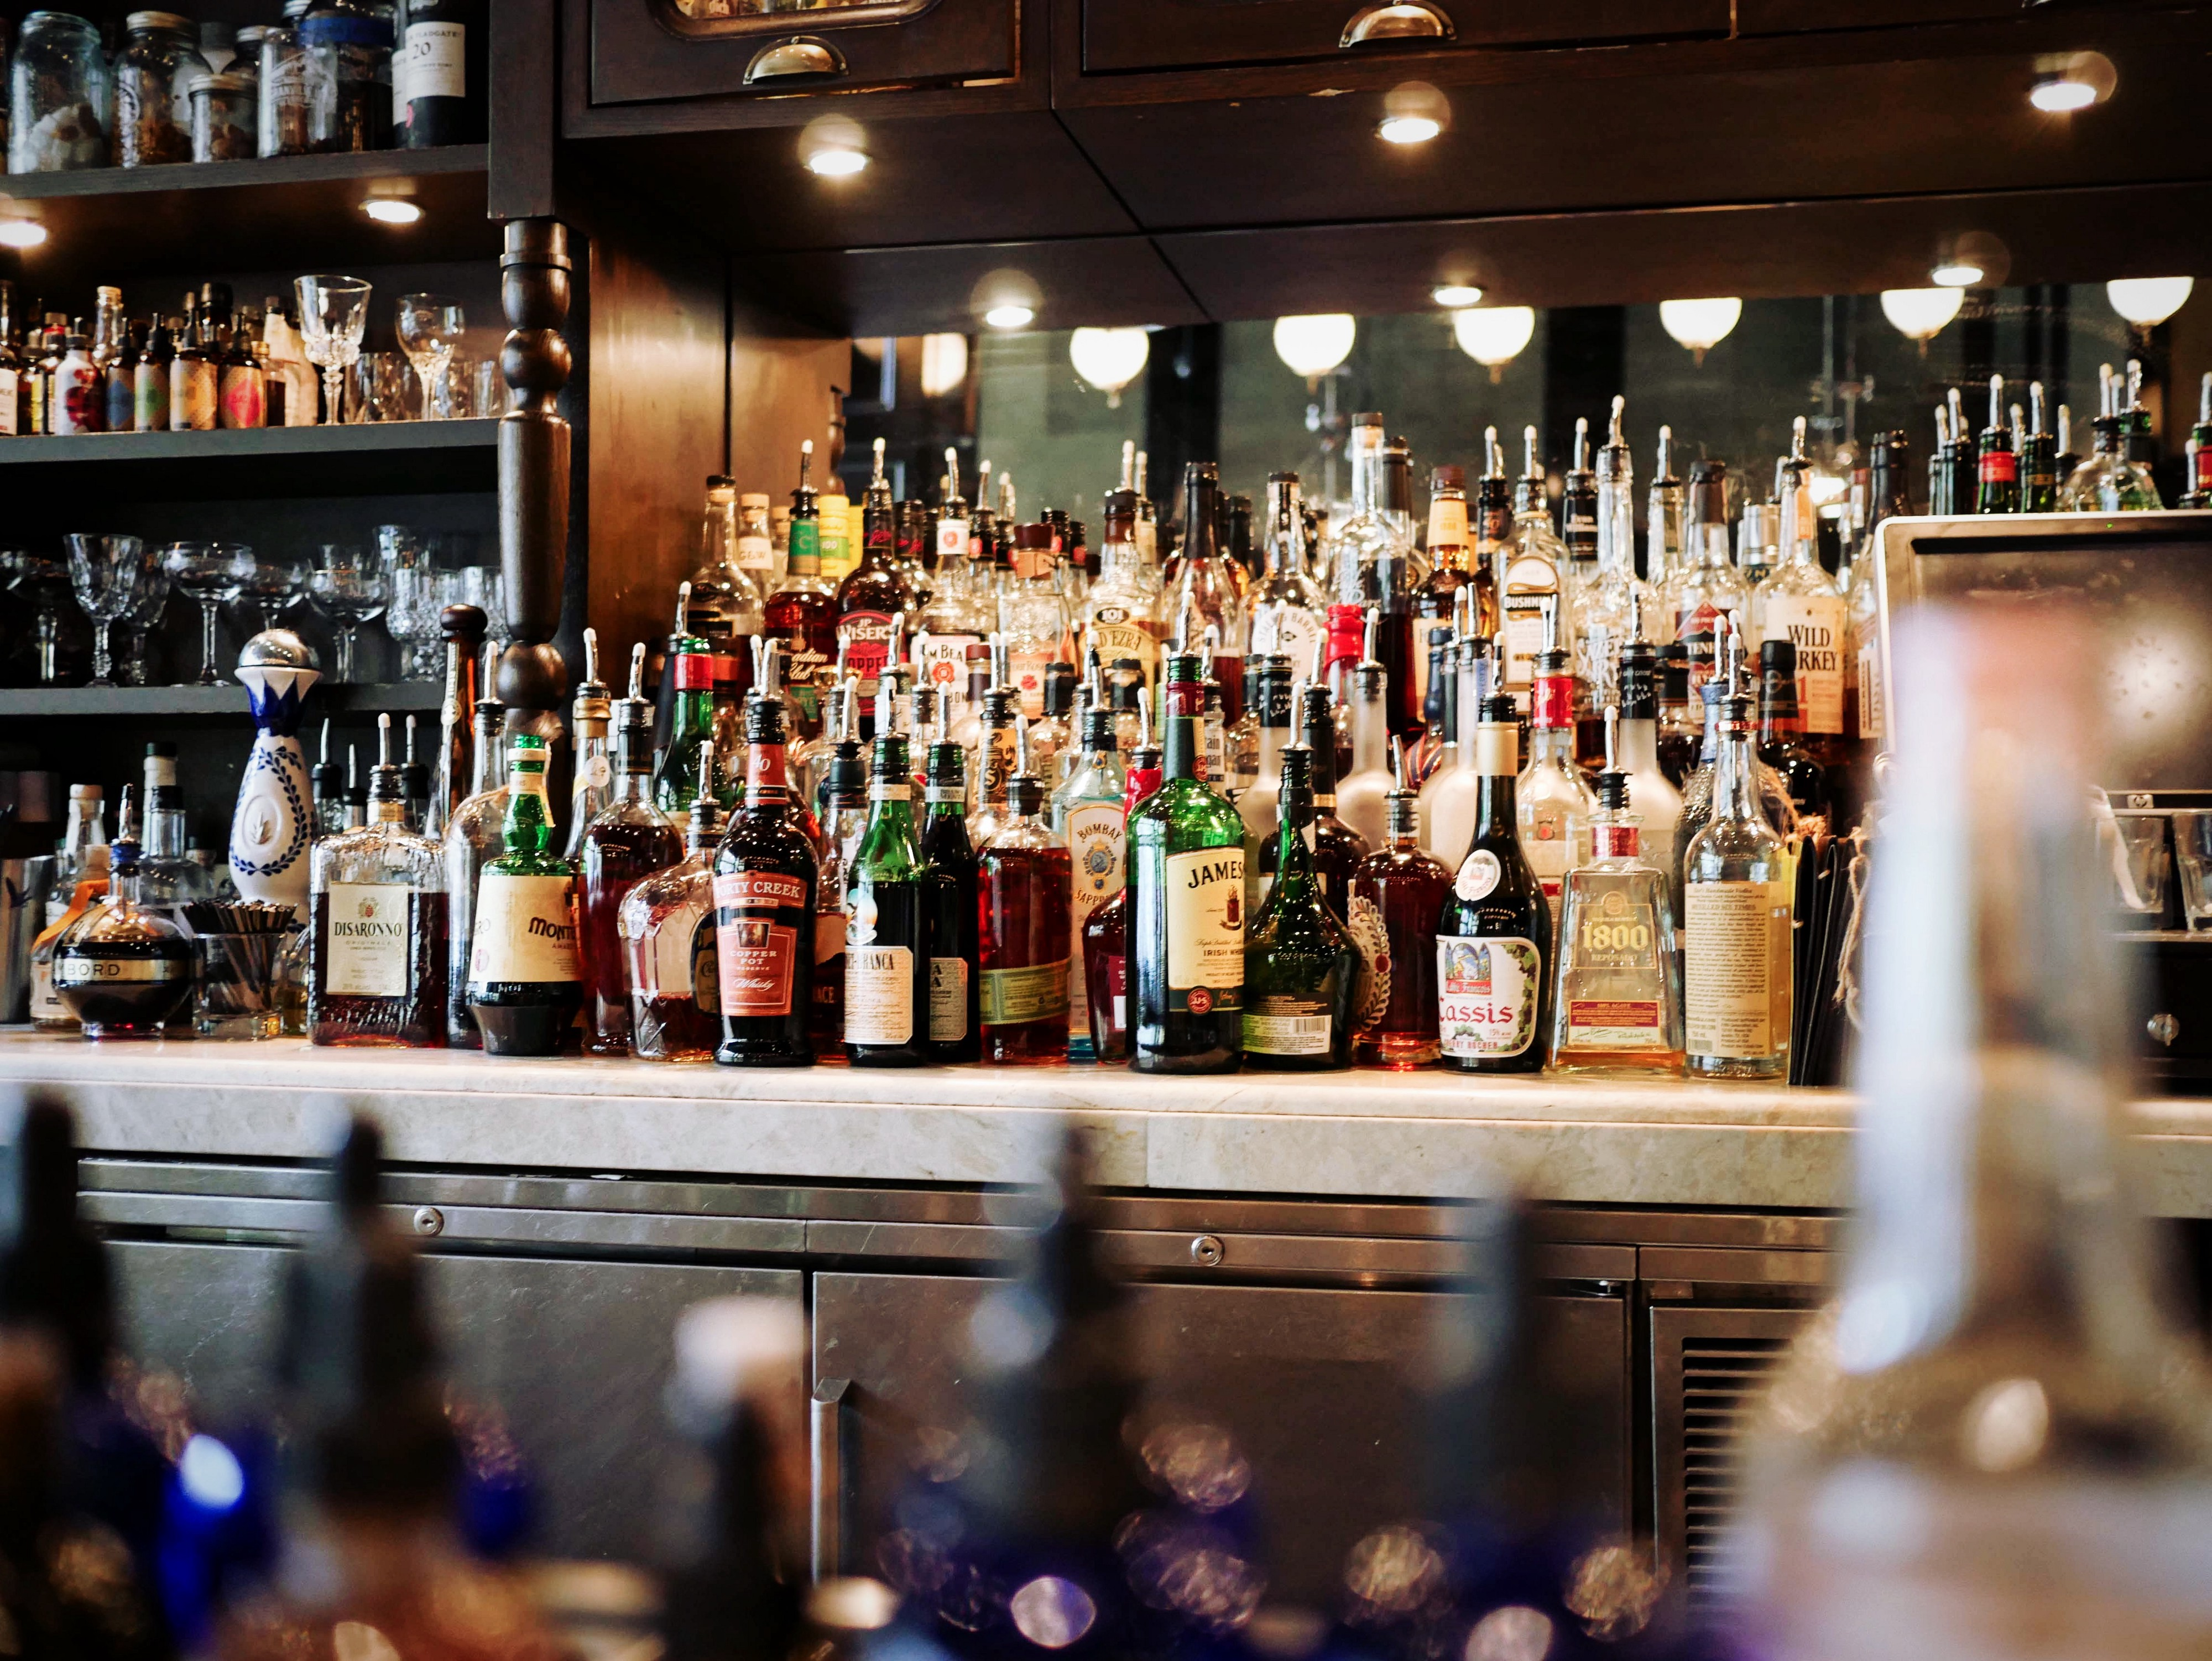 A shot of a bar, with bottles of spirits  on multiple levels